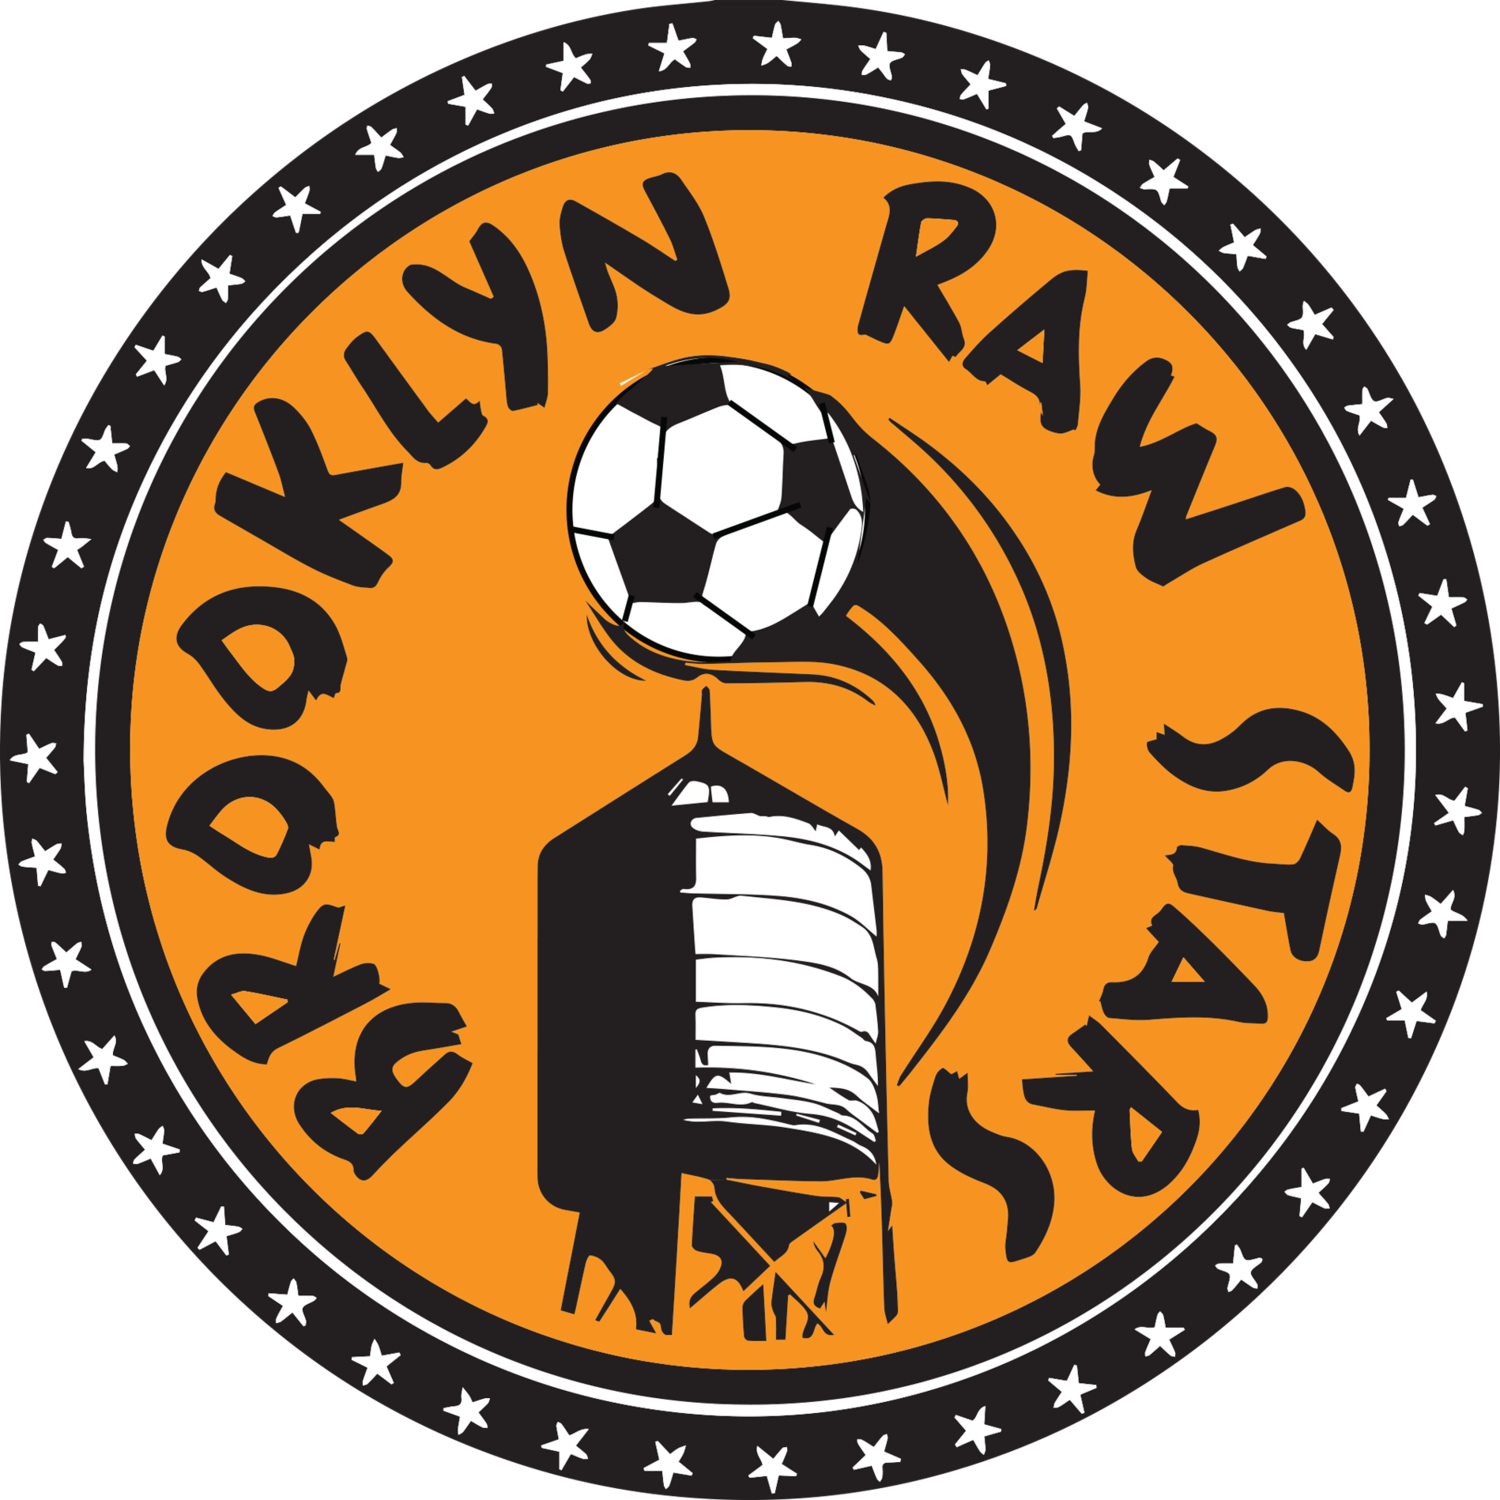 Brooklyn raw stars soccer. Motivation clipart football practice